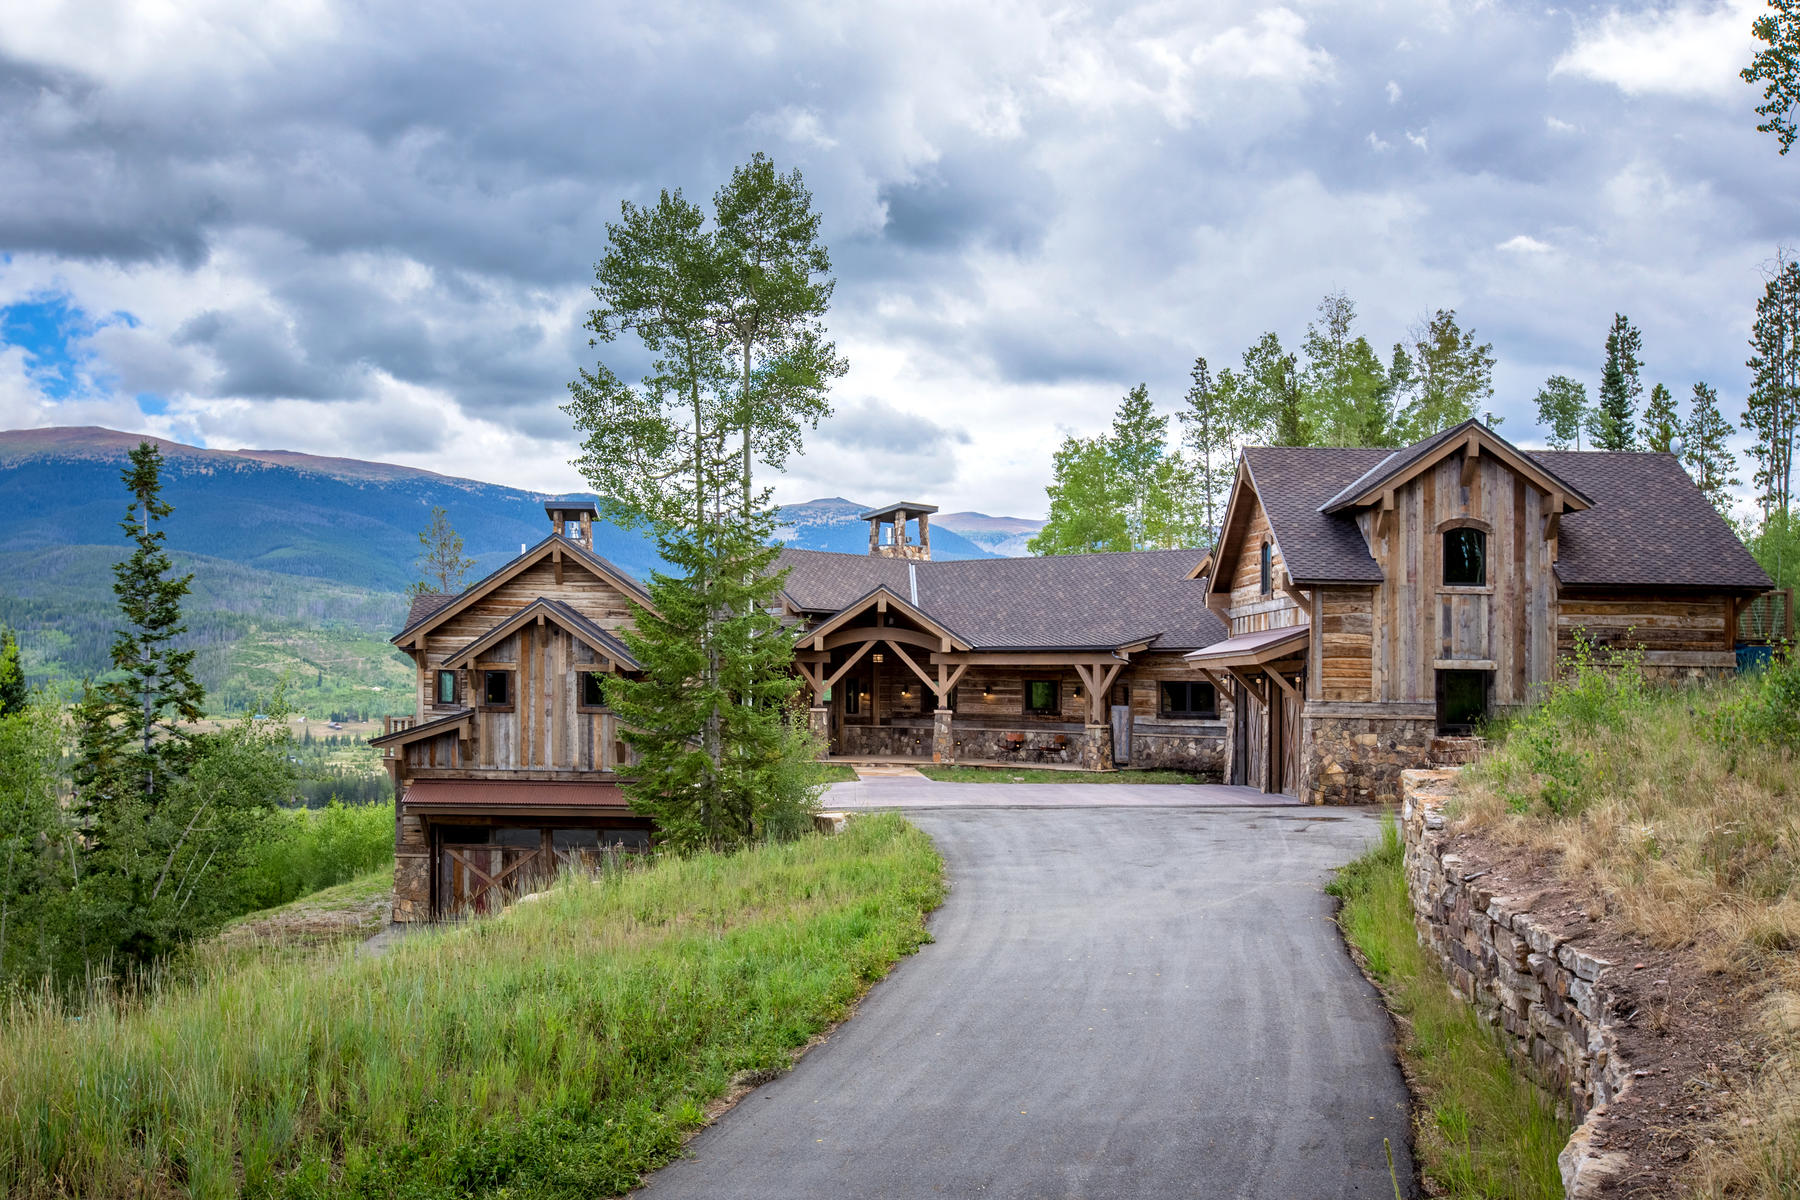 Single Family Home for Active at Enjoy the mountain lifestyle with this extraordinary custom home on 3.6 acres! 181 Bull Bugle Bend Fraser, Colorado 80442 United States